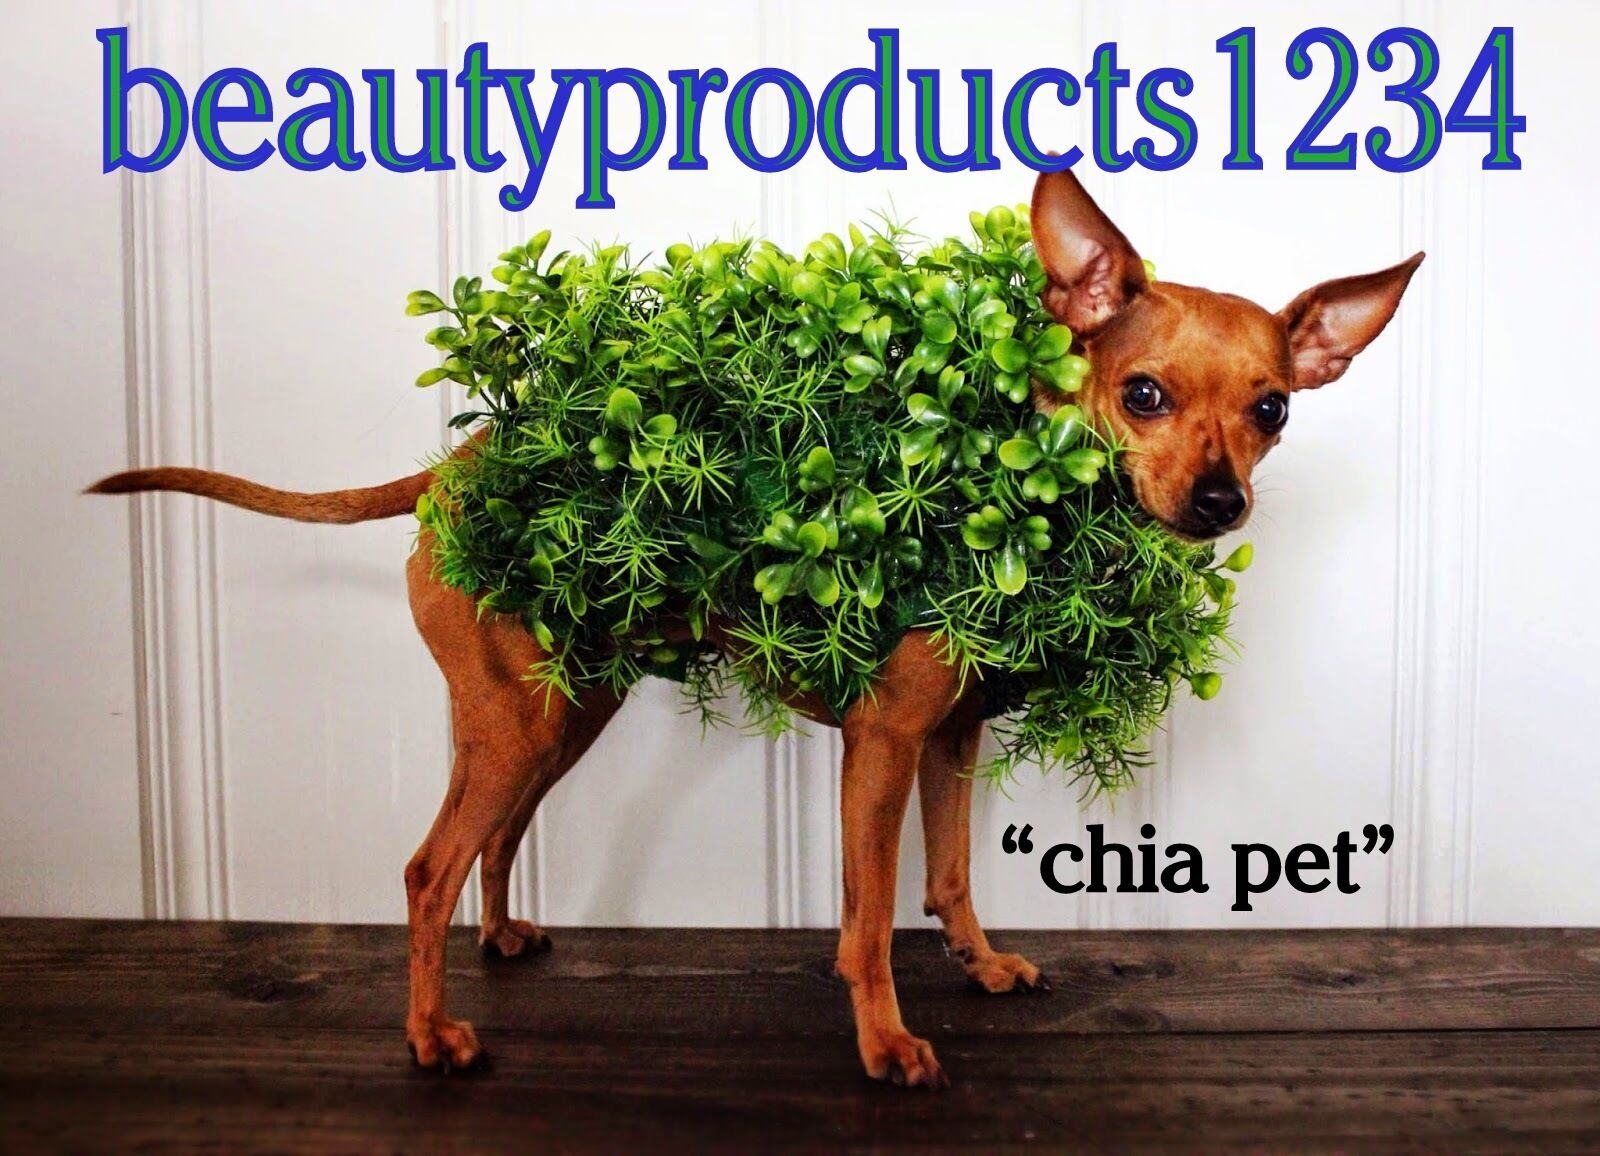 beautyproducts1234